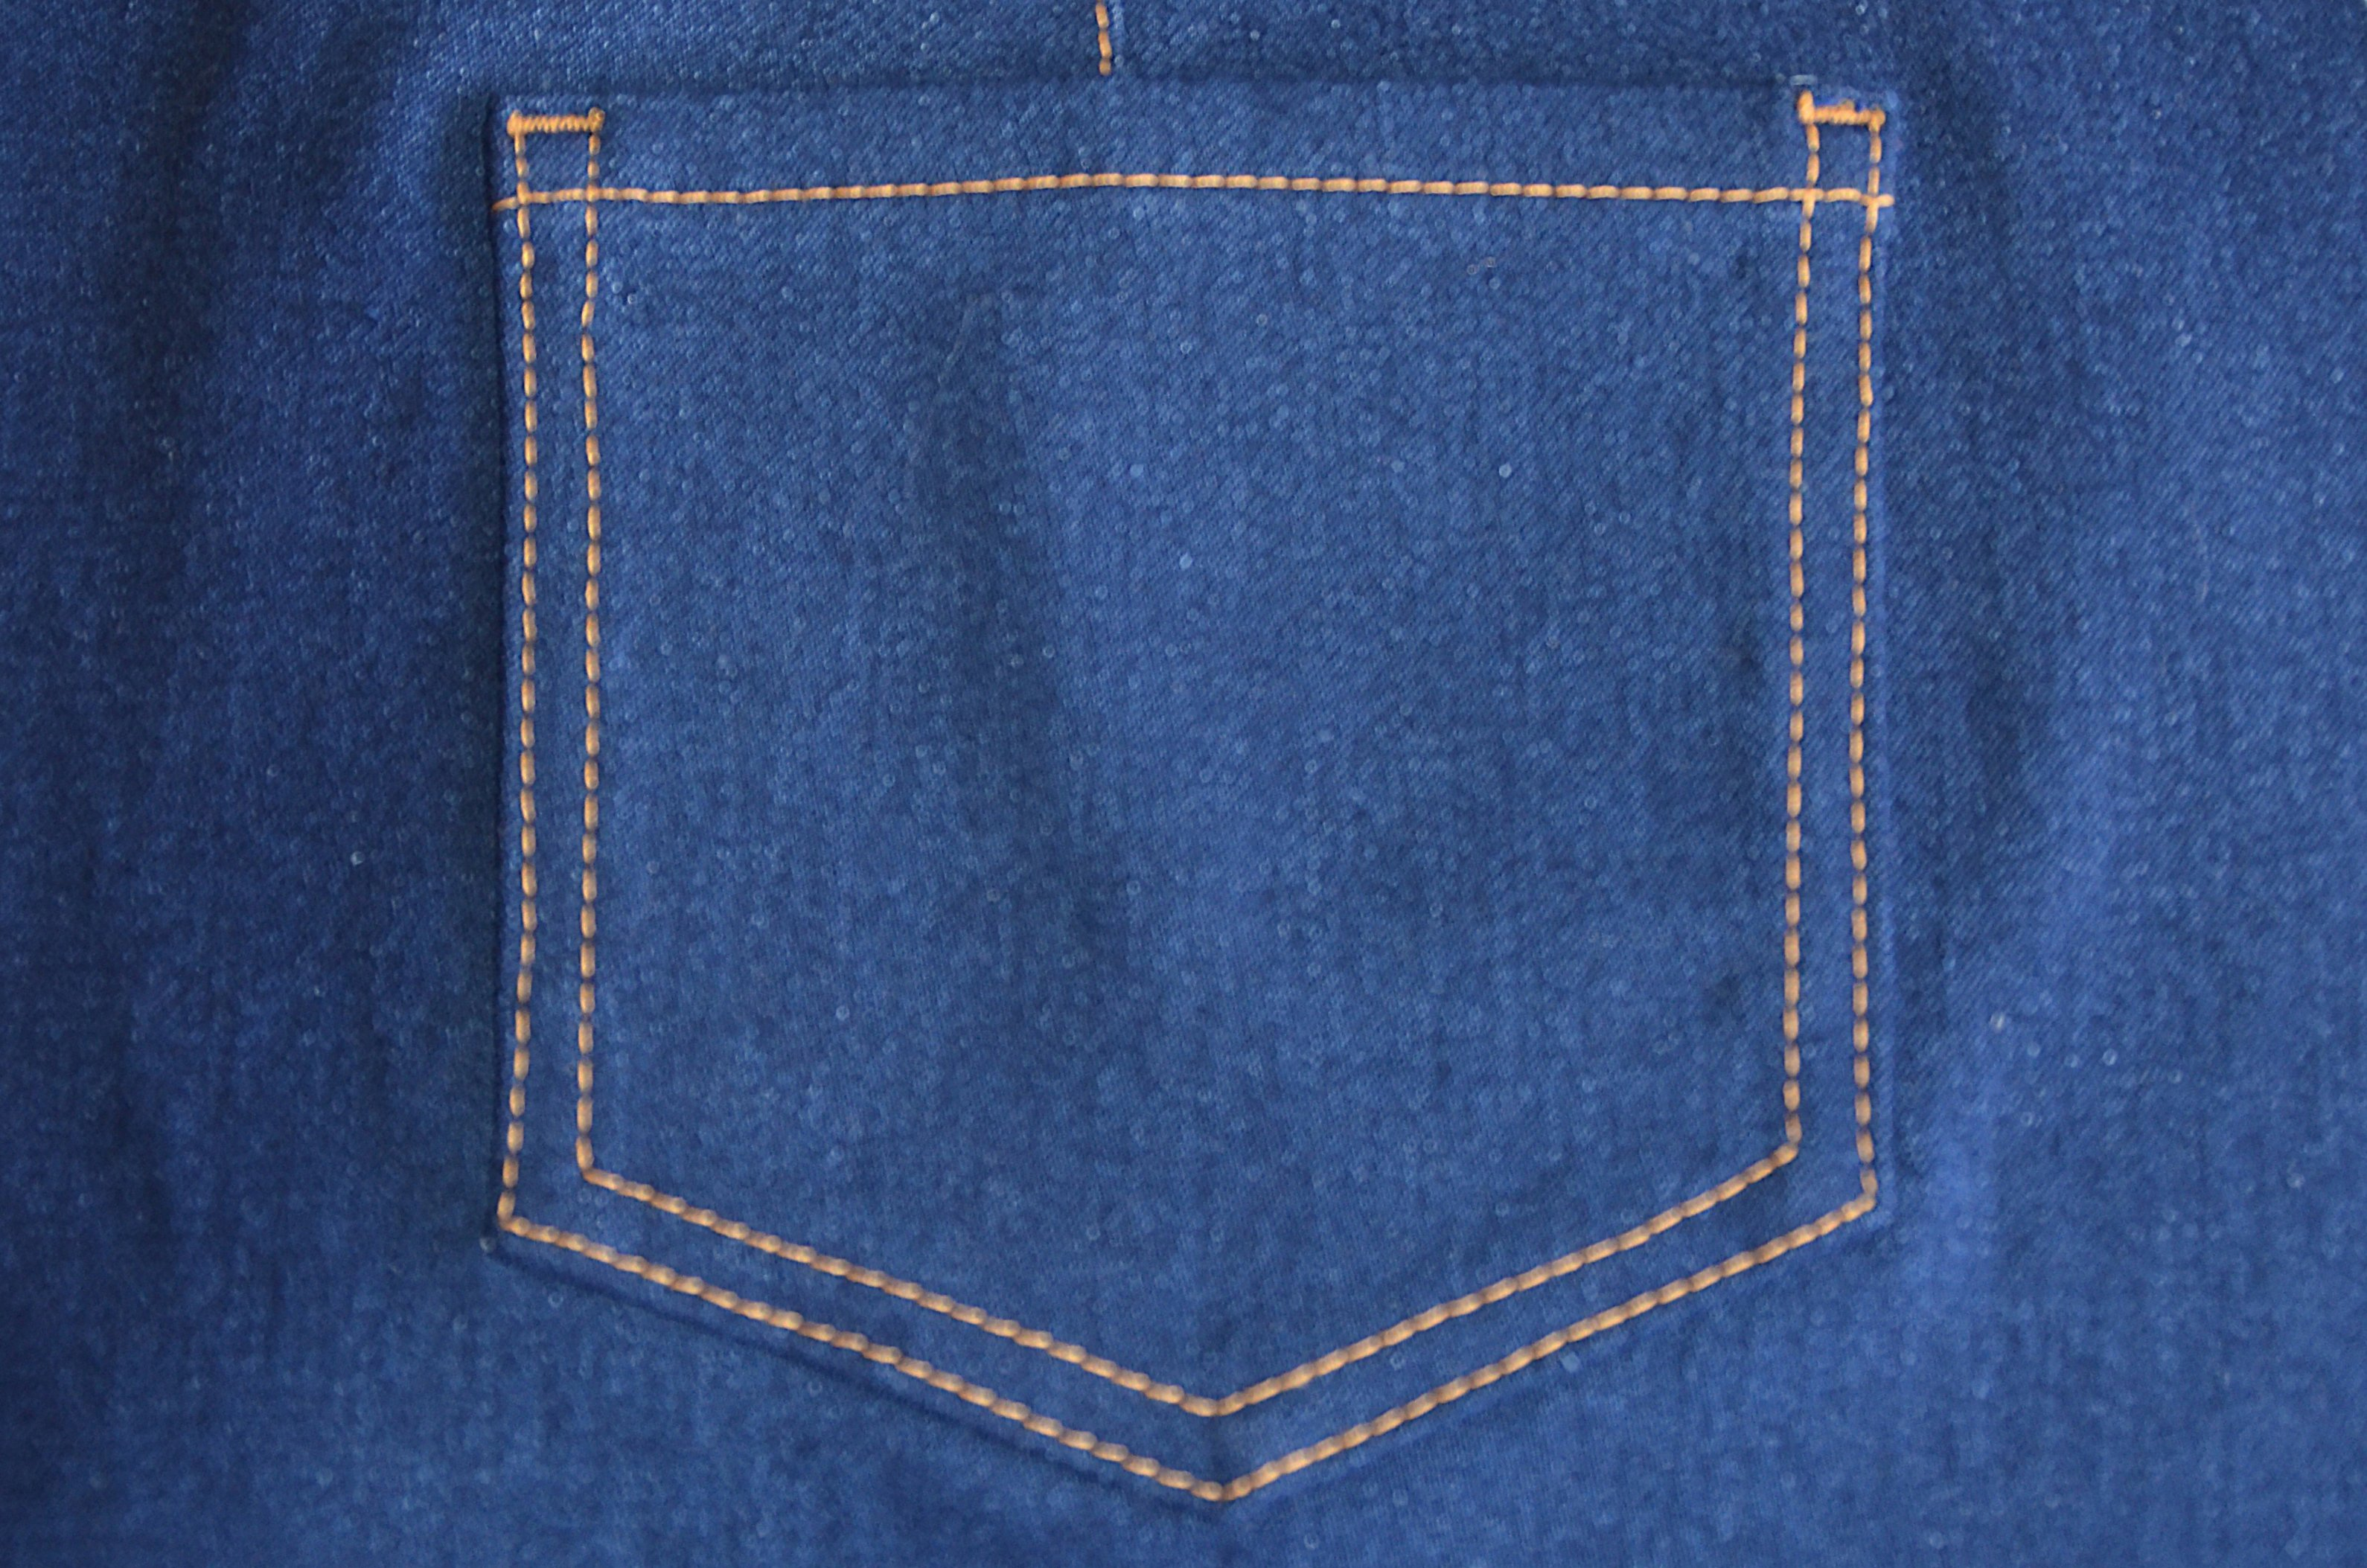 aa3c6b57425 Skirt sections  Lay the front and back sections of the skirt together right  side to right side and close the middle seam. Topstitch with a spacing of 2  and ...